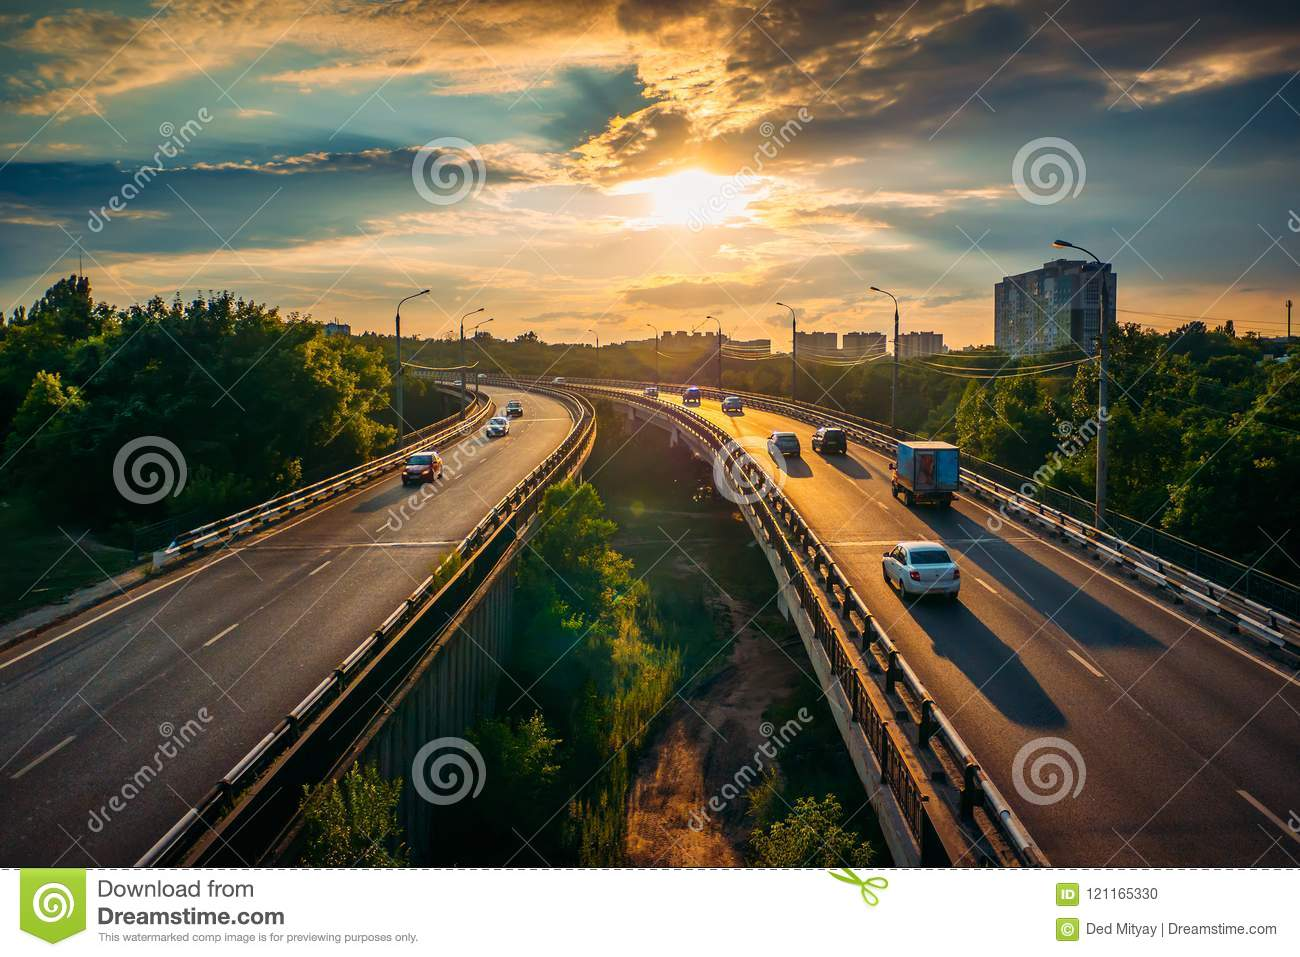 City traffic on asphalt road or highway route at sunset time, lot of cars drive with fast speed, urban transportation cityscape